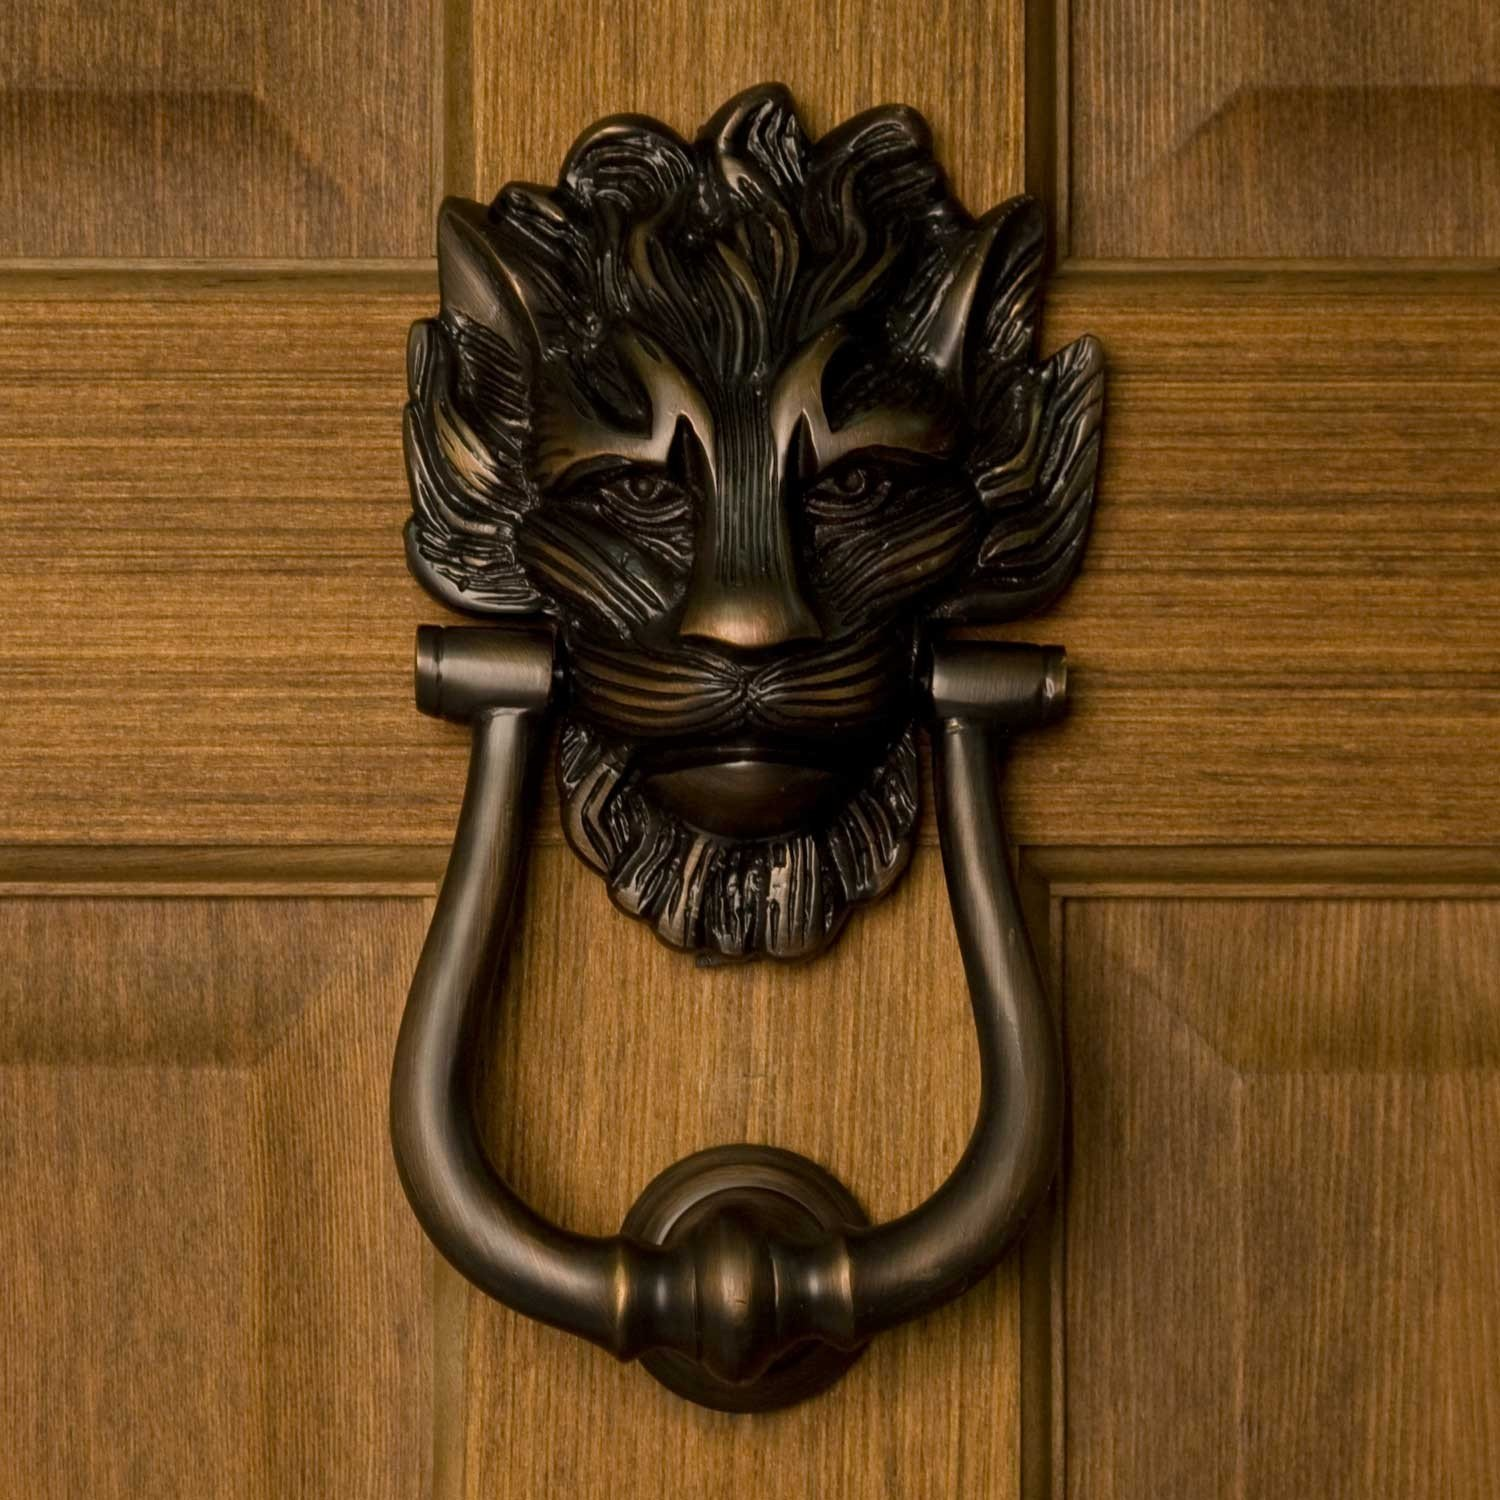 Naiture Brass Large Lion's Head Door Knocker In Oil Rubbed Bronze Finish